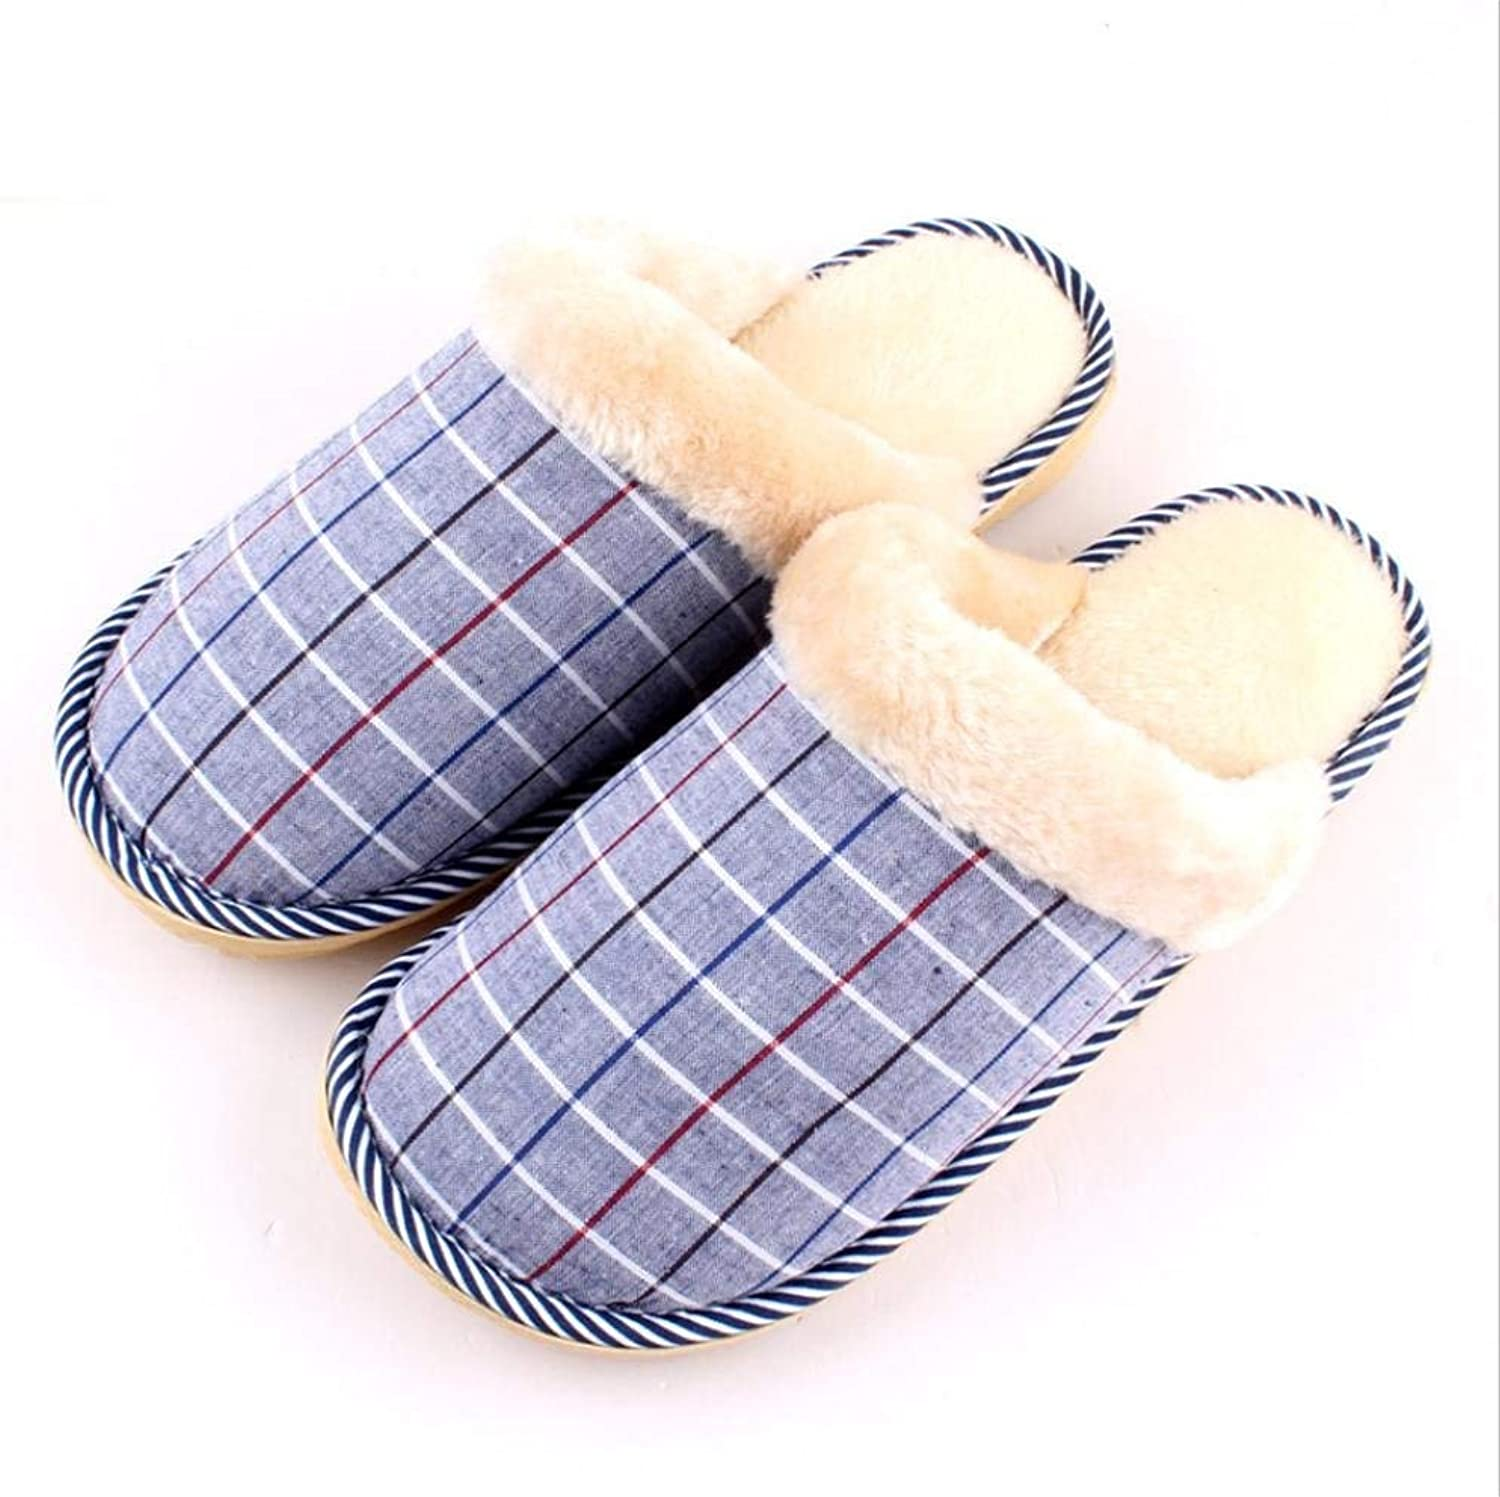 Gouuuuoy män Slipper Home Interner Icke -Slip Män Varma Varma Varma Tillfälliga Slippers Plaid Mönster Vinter och Autumn Super Soft Plush Wear Resistent Wild Slippers  kampanjer